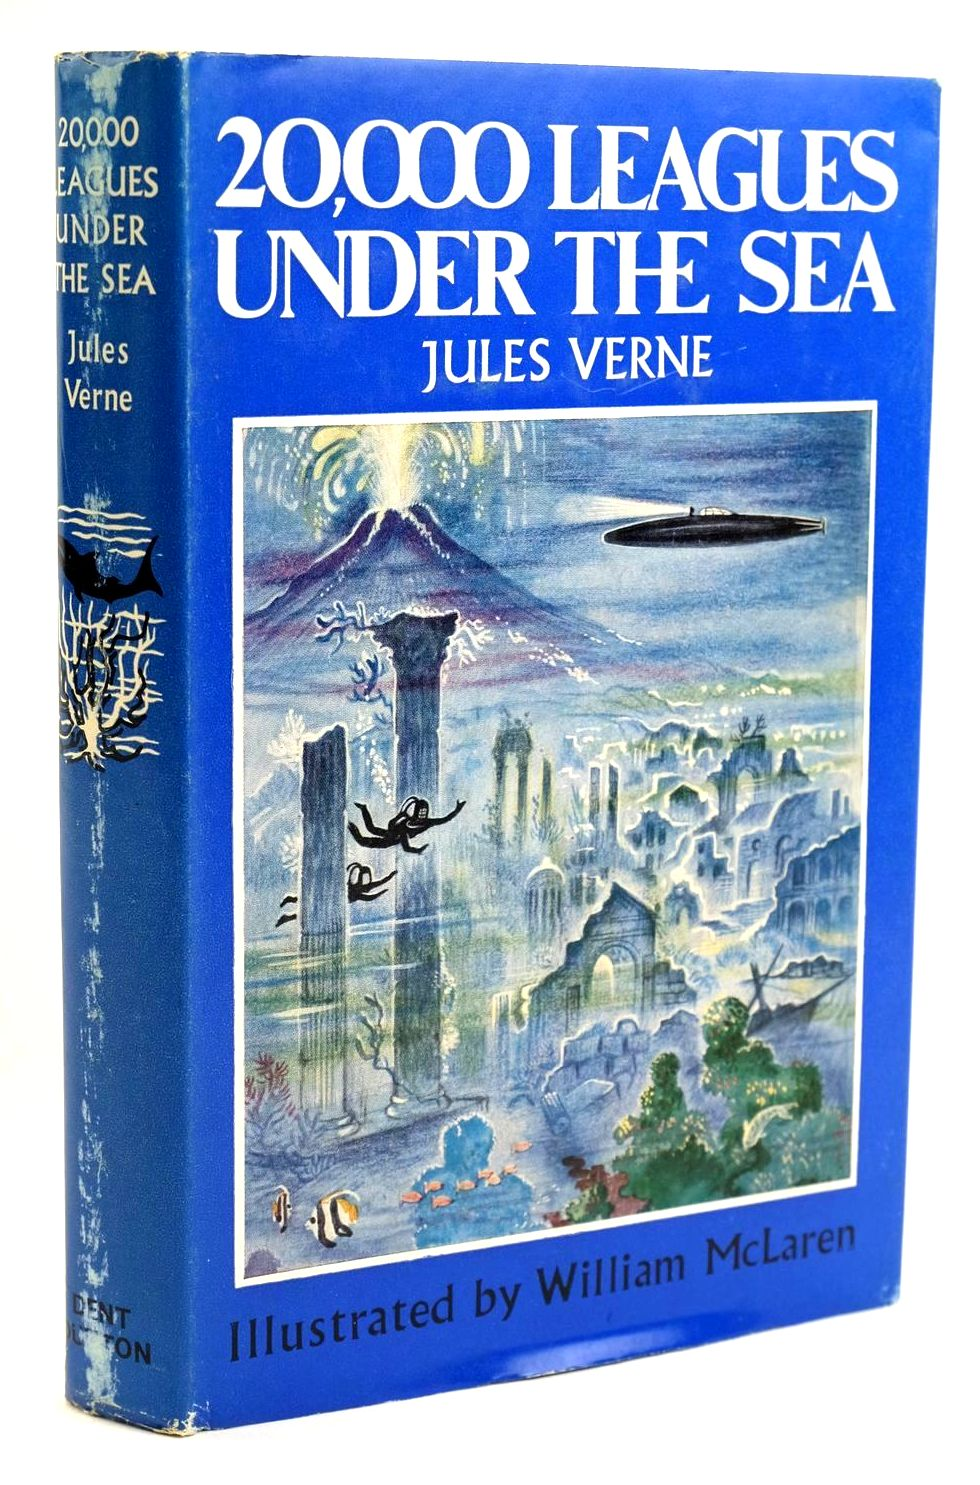 Photo of TWENTY THOUSAND LEAGUES UNDER THE SEA written by Verne, Jules illustrated by McLaren, William published by J.M. Dent & Sons Ltd. (STOCK CODE: 1319187)  for sale by Stella & Rose's Books